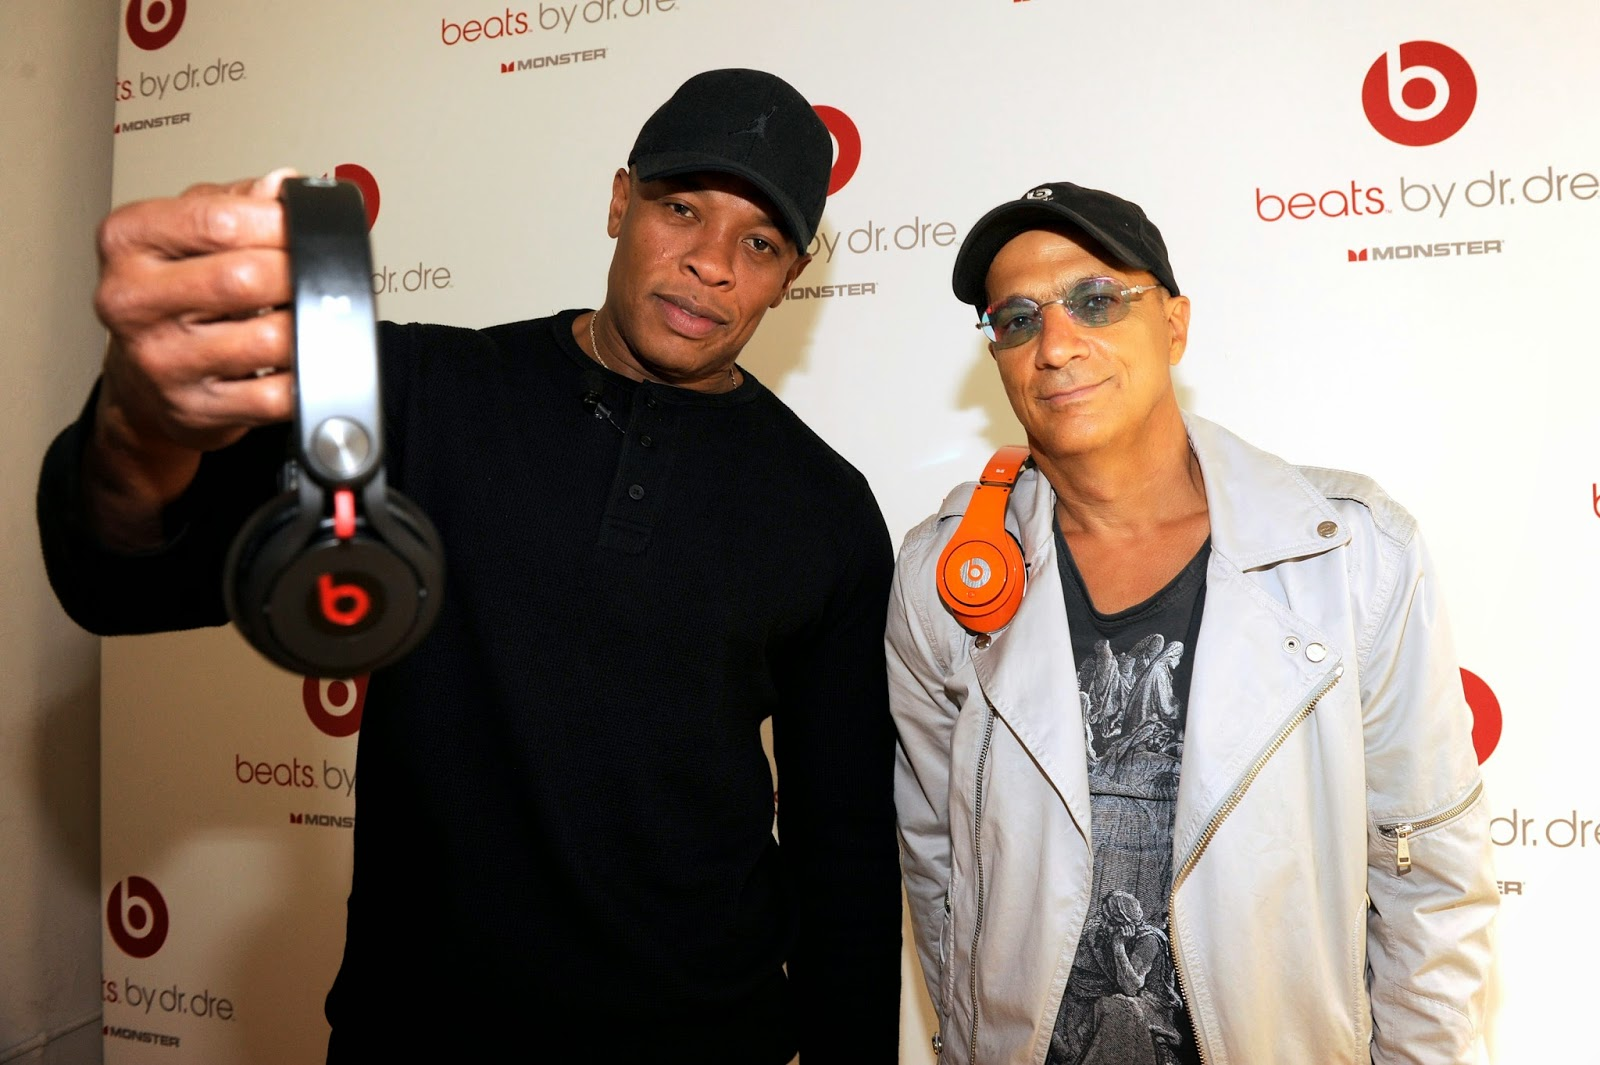 Dr. Dre and Jimmy Iovine, Beats Co-Founder